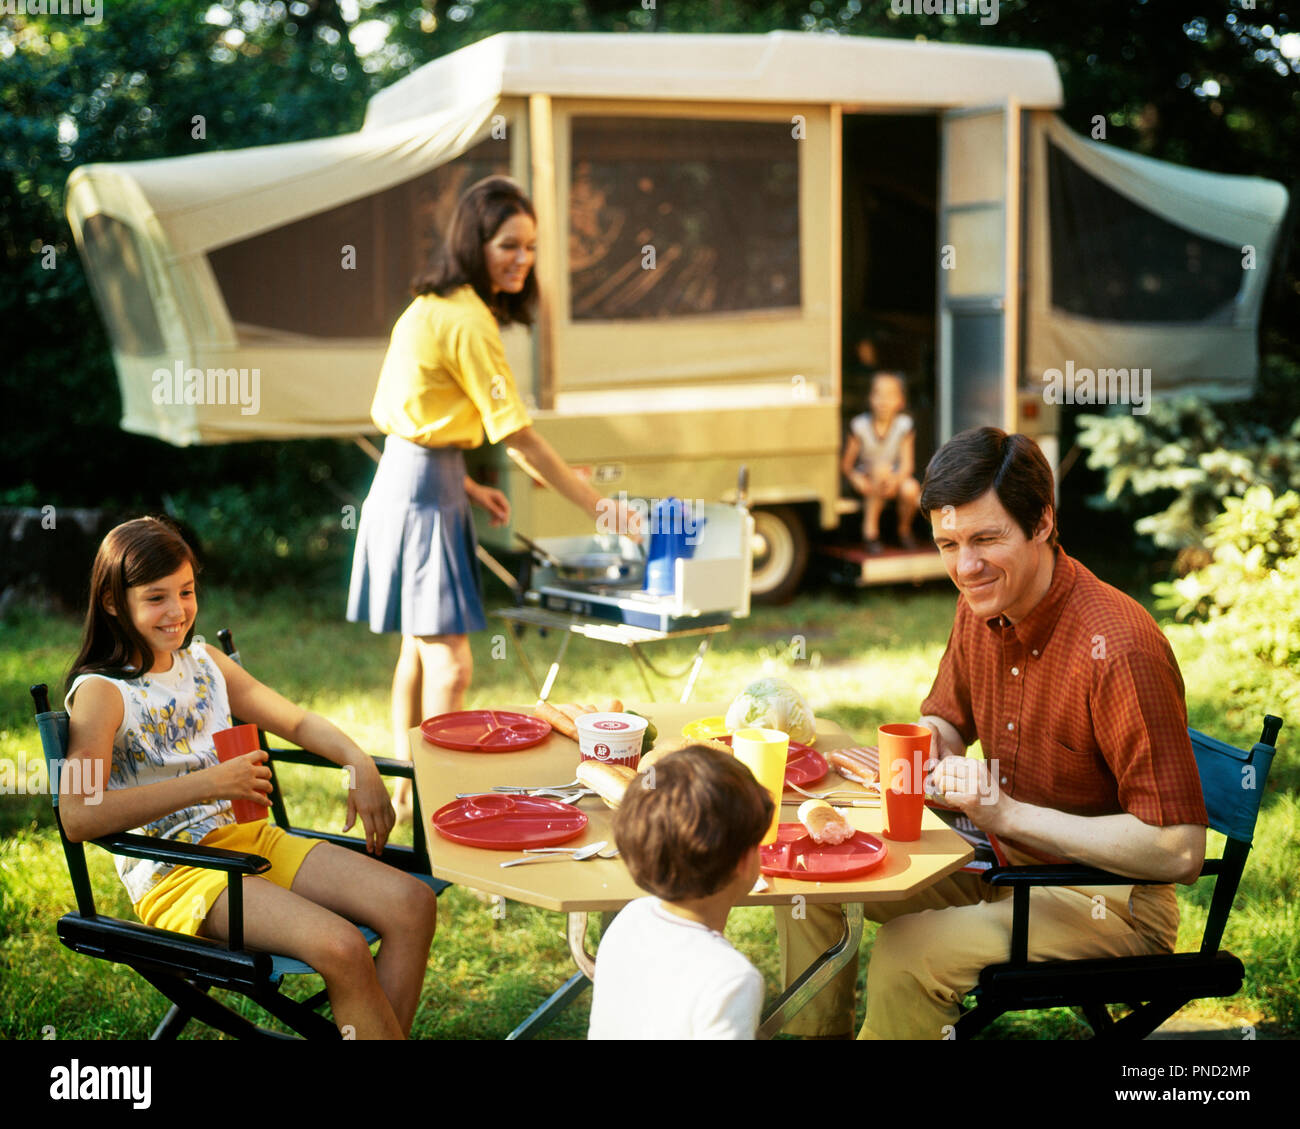 1970s FAMILY OF FIVE EATING MEAL BY POP-UP CAMPER TRAILER RECREATIONAL VEHICLE - kc7585 PHT001 HARS 3 DAD TRAVEL MEAL MOM EAT NOSTALGIC PAIR SODA COLOR RELATIONSHIP MOTHERS SETTING LIQUID OLD TIME NOSTALGIA BROTHER OLD FASHION SISTER 1 SOFT JUVENILE VEHICLE TEAMWORK STORAGE SONS PLEASED FAMILIES JOY LIFESTYLE FIVE PARENTING CELEBRATION FEMALES MARRIED 5 BROTHERS RURAL SPOUSE HUSBANDS NATURE TRANSPORT FULL-LENGTH DAUGHTERS PERSONS MALES ROUGH SIBLINGS SISTERS TRANSPORTATION FATHERS RECREATION CAMPING HAPPINESS HEAD AND SHOULDERS CHEERFUL ADVENTURE BEVERAGE LEISURE DADS EXCITEMENT FLUID - Stock Image